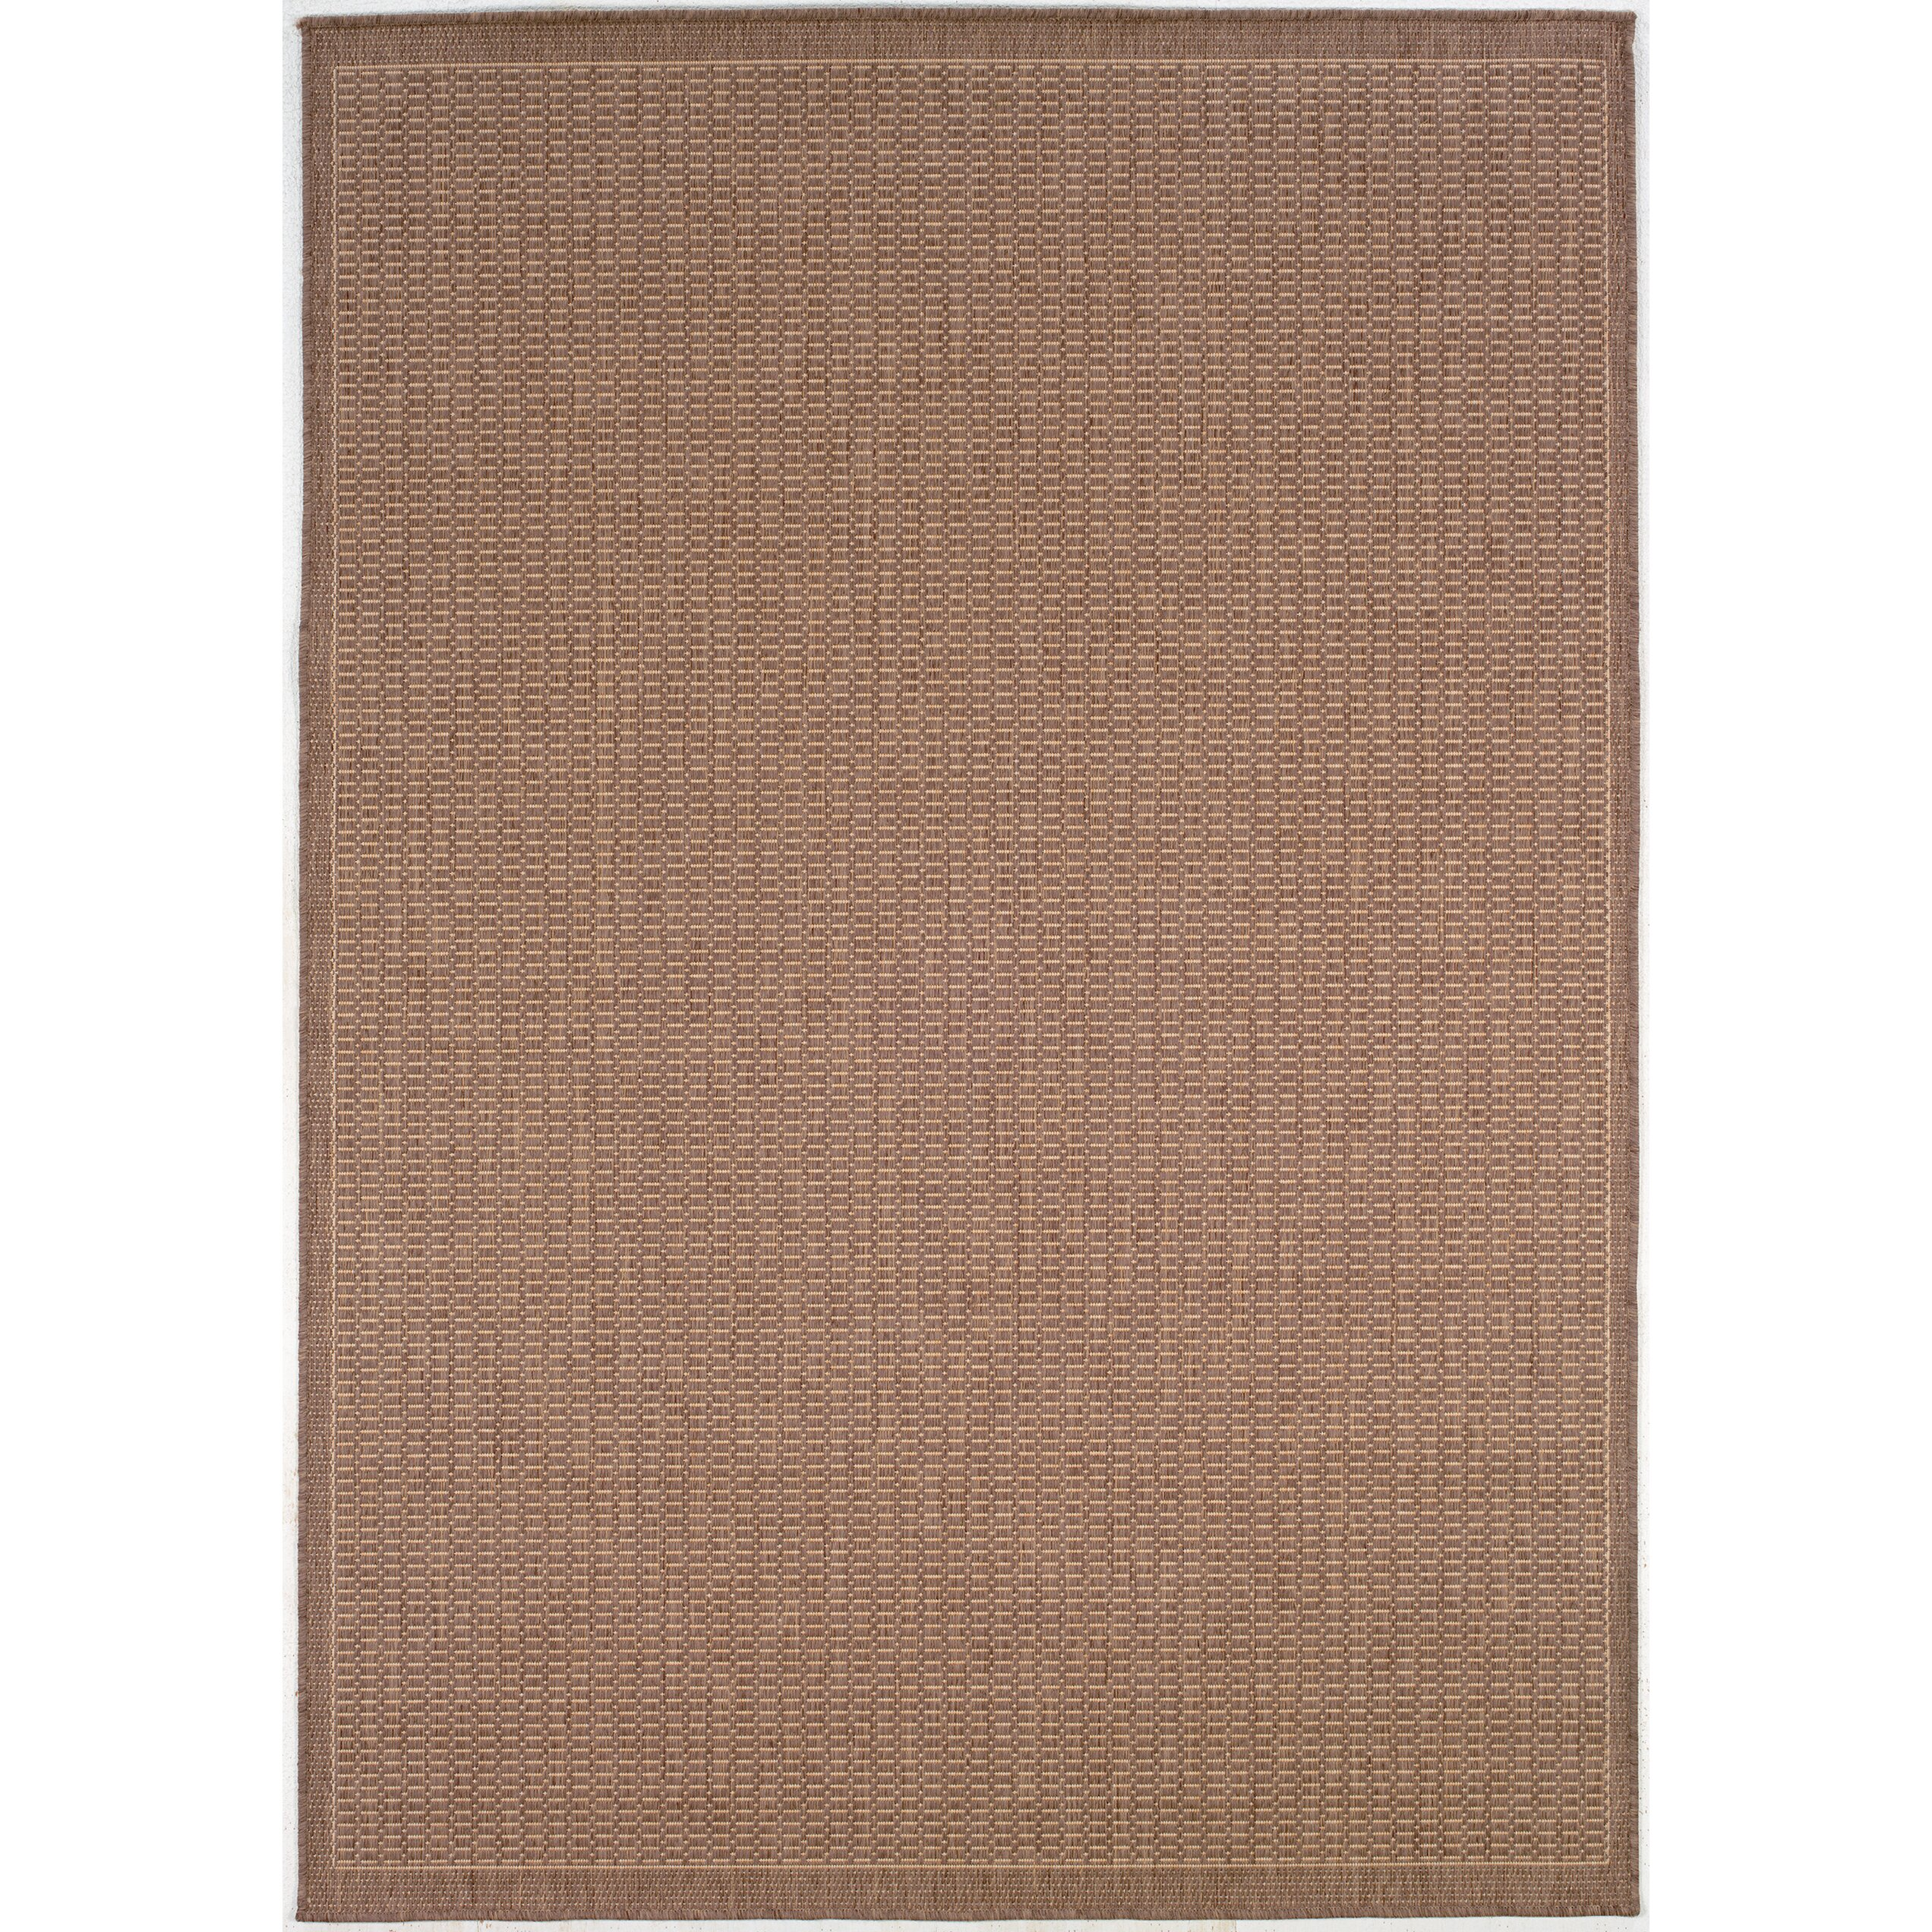 Couristan recife saddle stitch cocoa indoor outdoor area for Indoor out door rugs